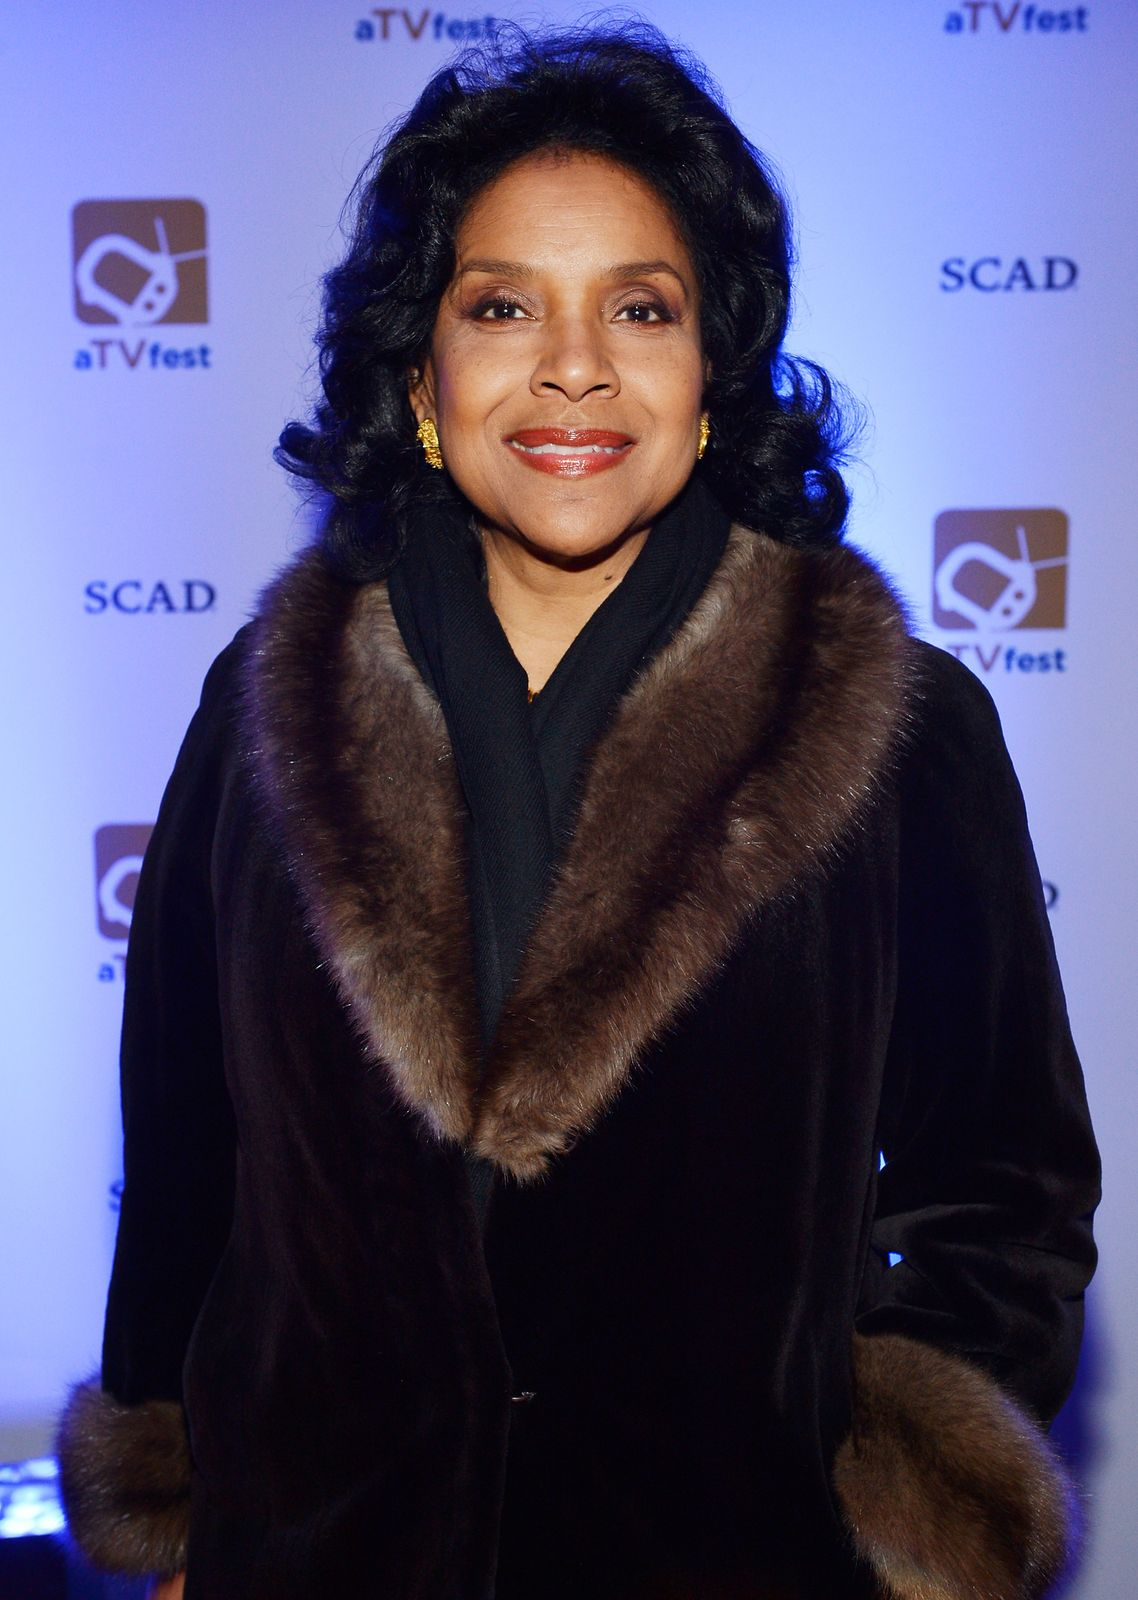 Actor Phylicia Rashad honored during the Inaugural aTVfest presented by (SCAD) Savannah College of Art and Design on February 16, 2013 | Photo: Getty Images